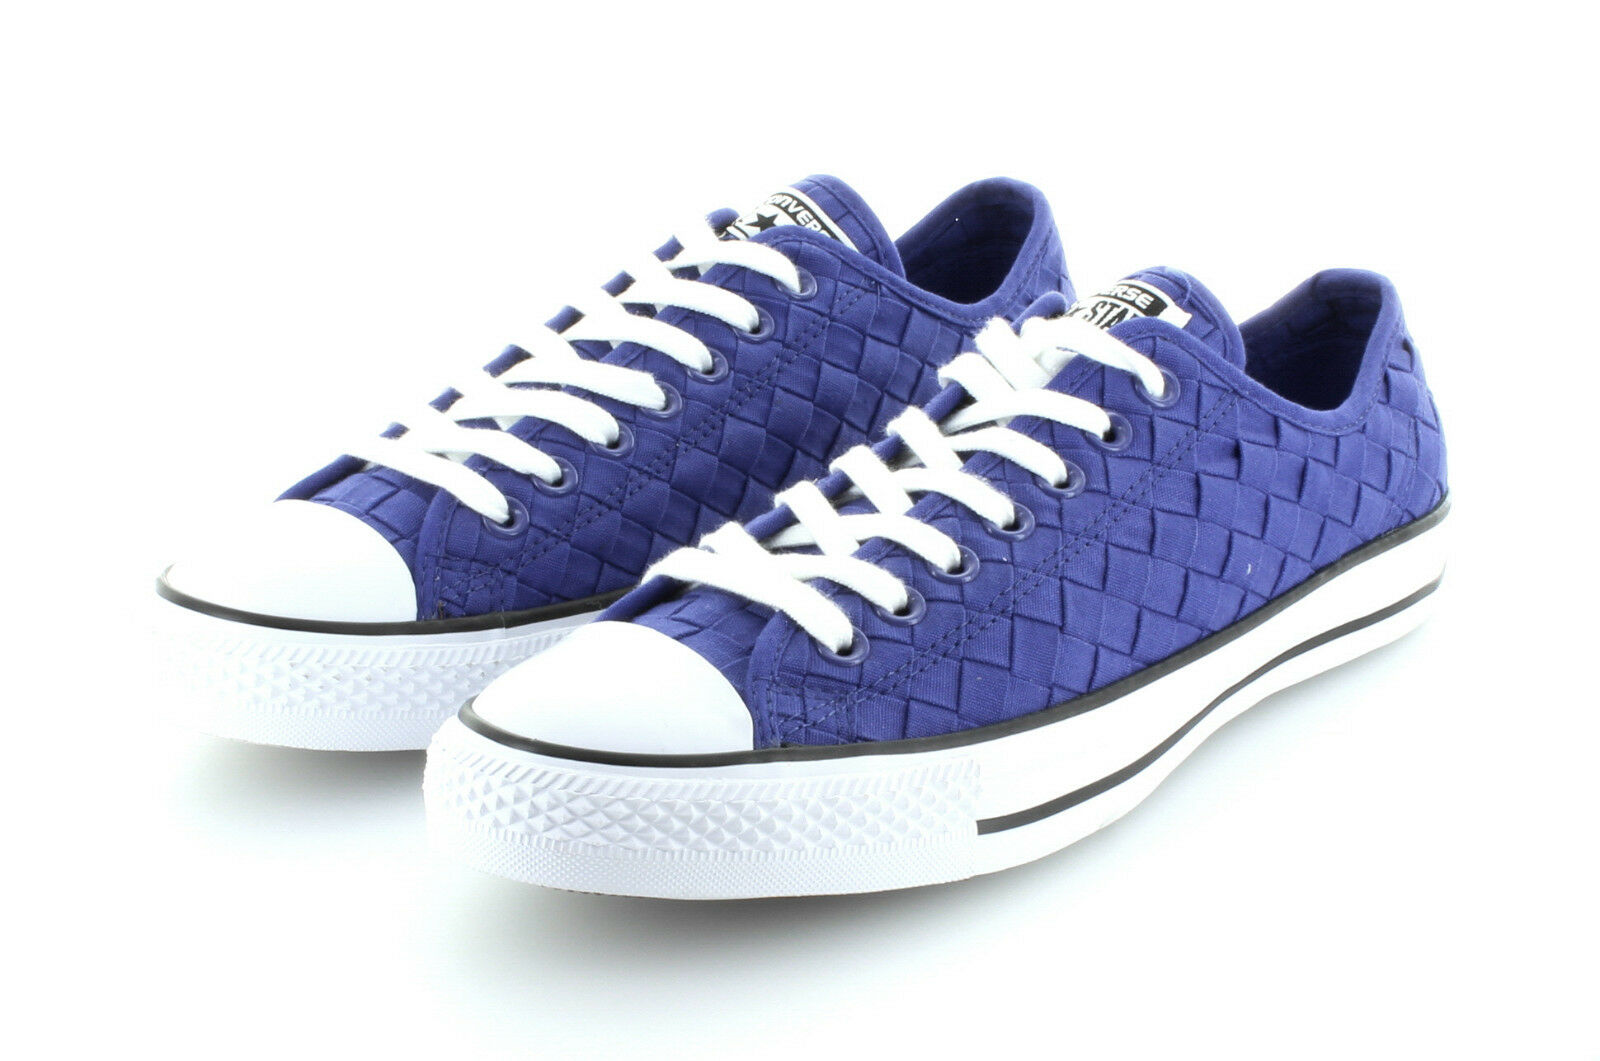 Converse Chuck Taylor All Star Ox Textile Clematis Blue 42,5 / 43,5 US 9